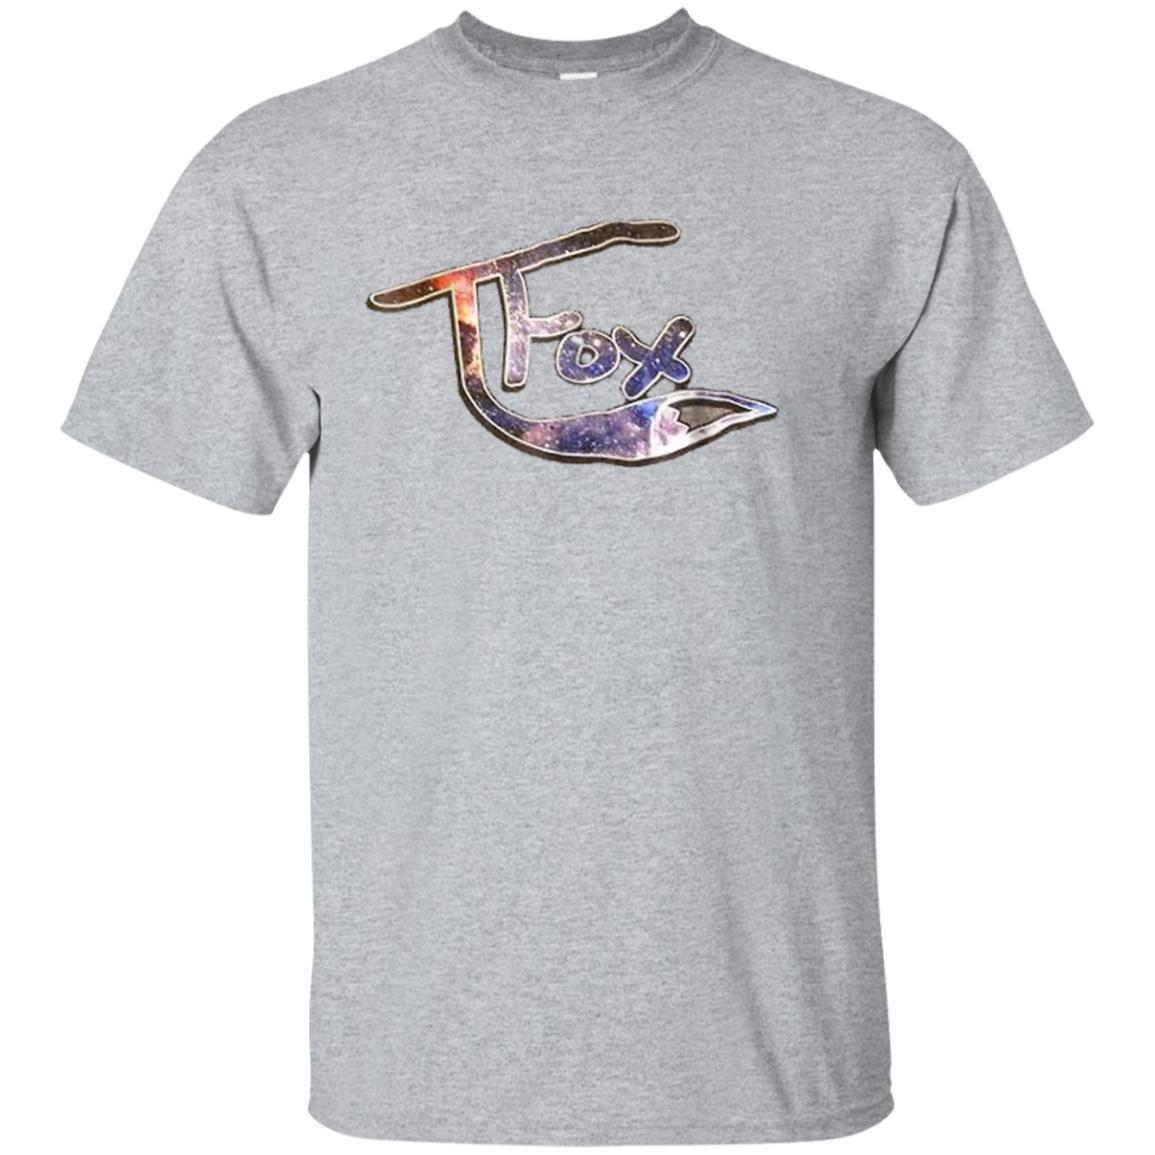 Fox Tee Shirt I Just Really Like Foxes Funny For Kids 99promocode